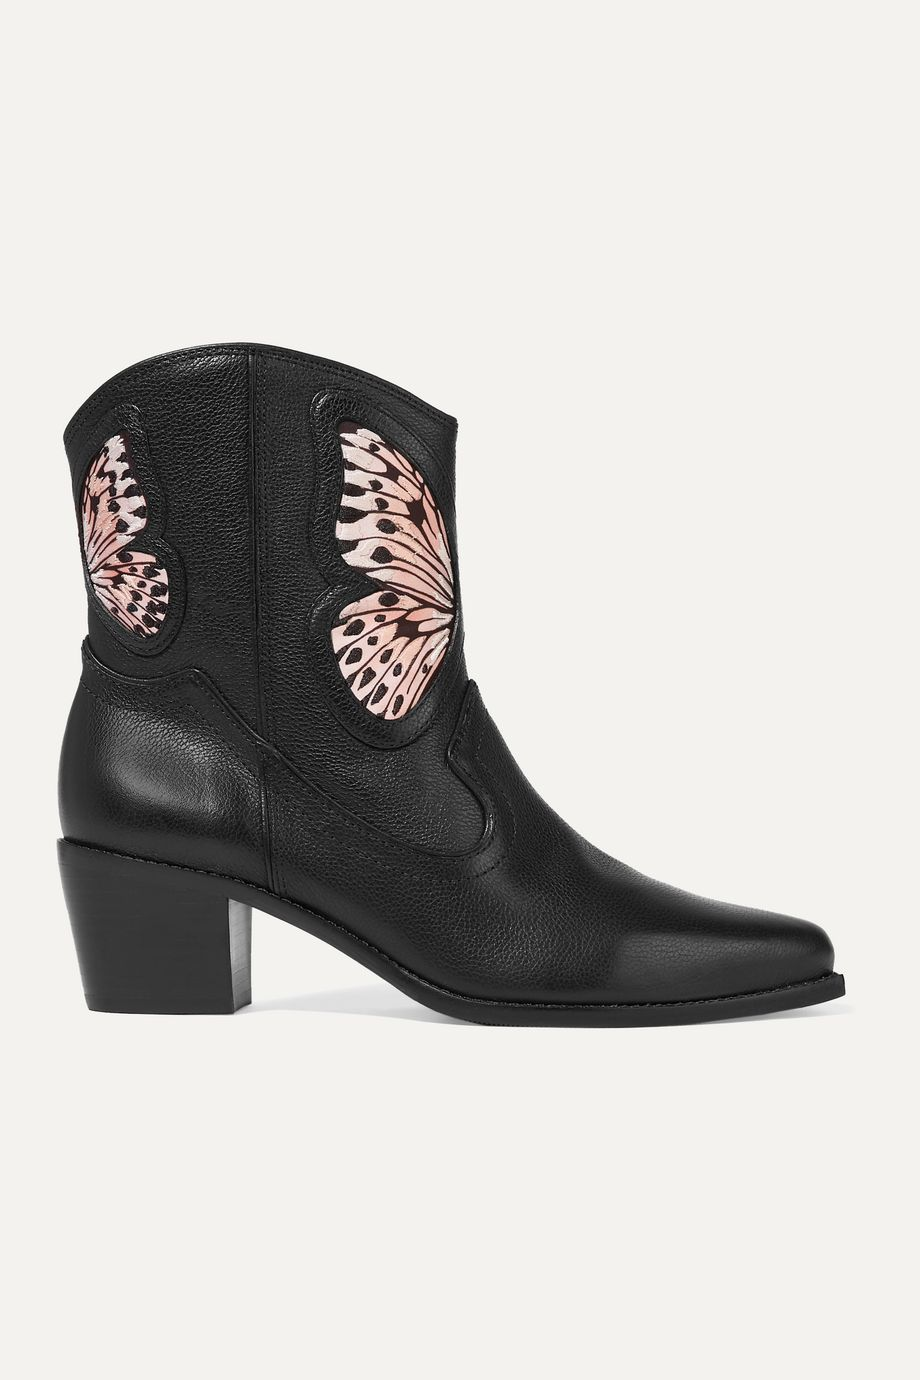 Sophia Webster Shelby embroidered satin-paneled textured-leather ankle boots